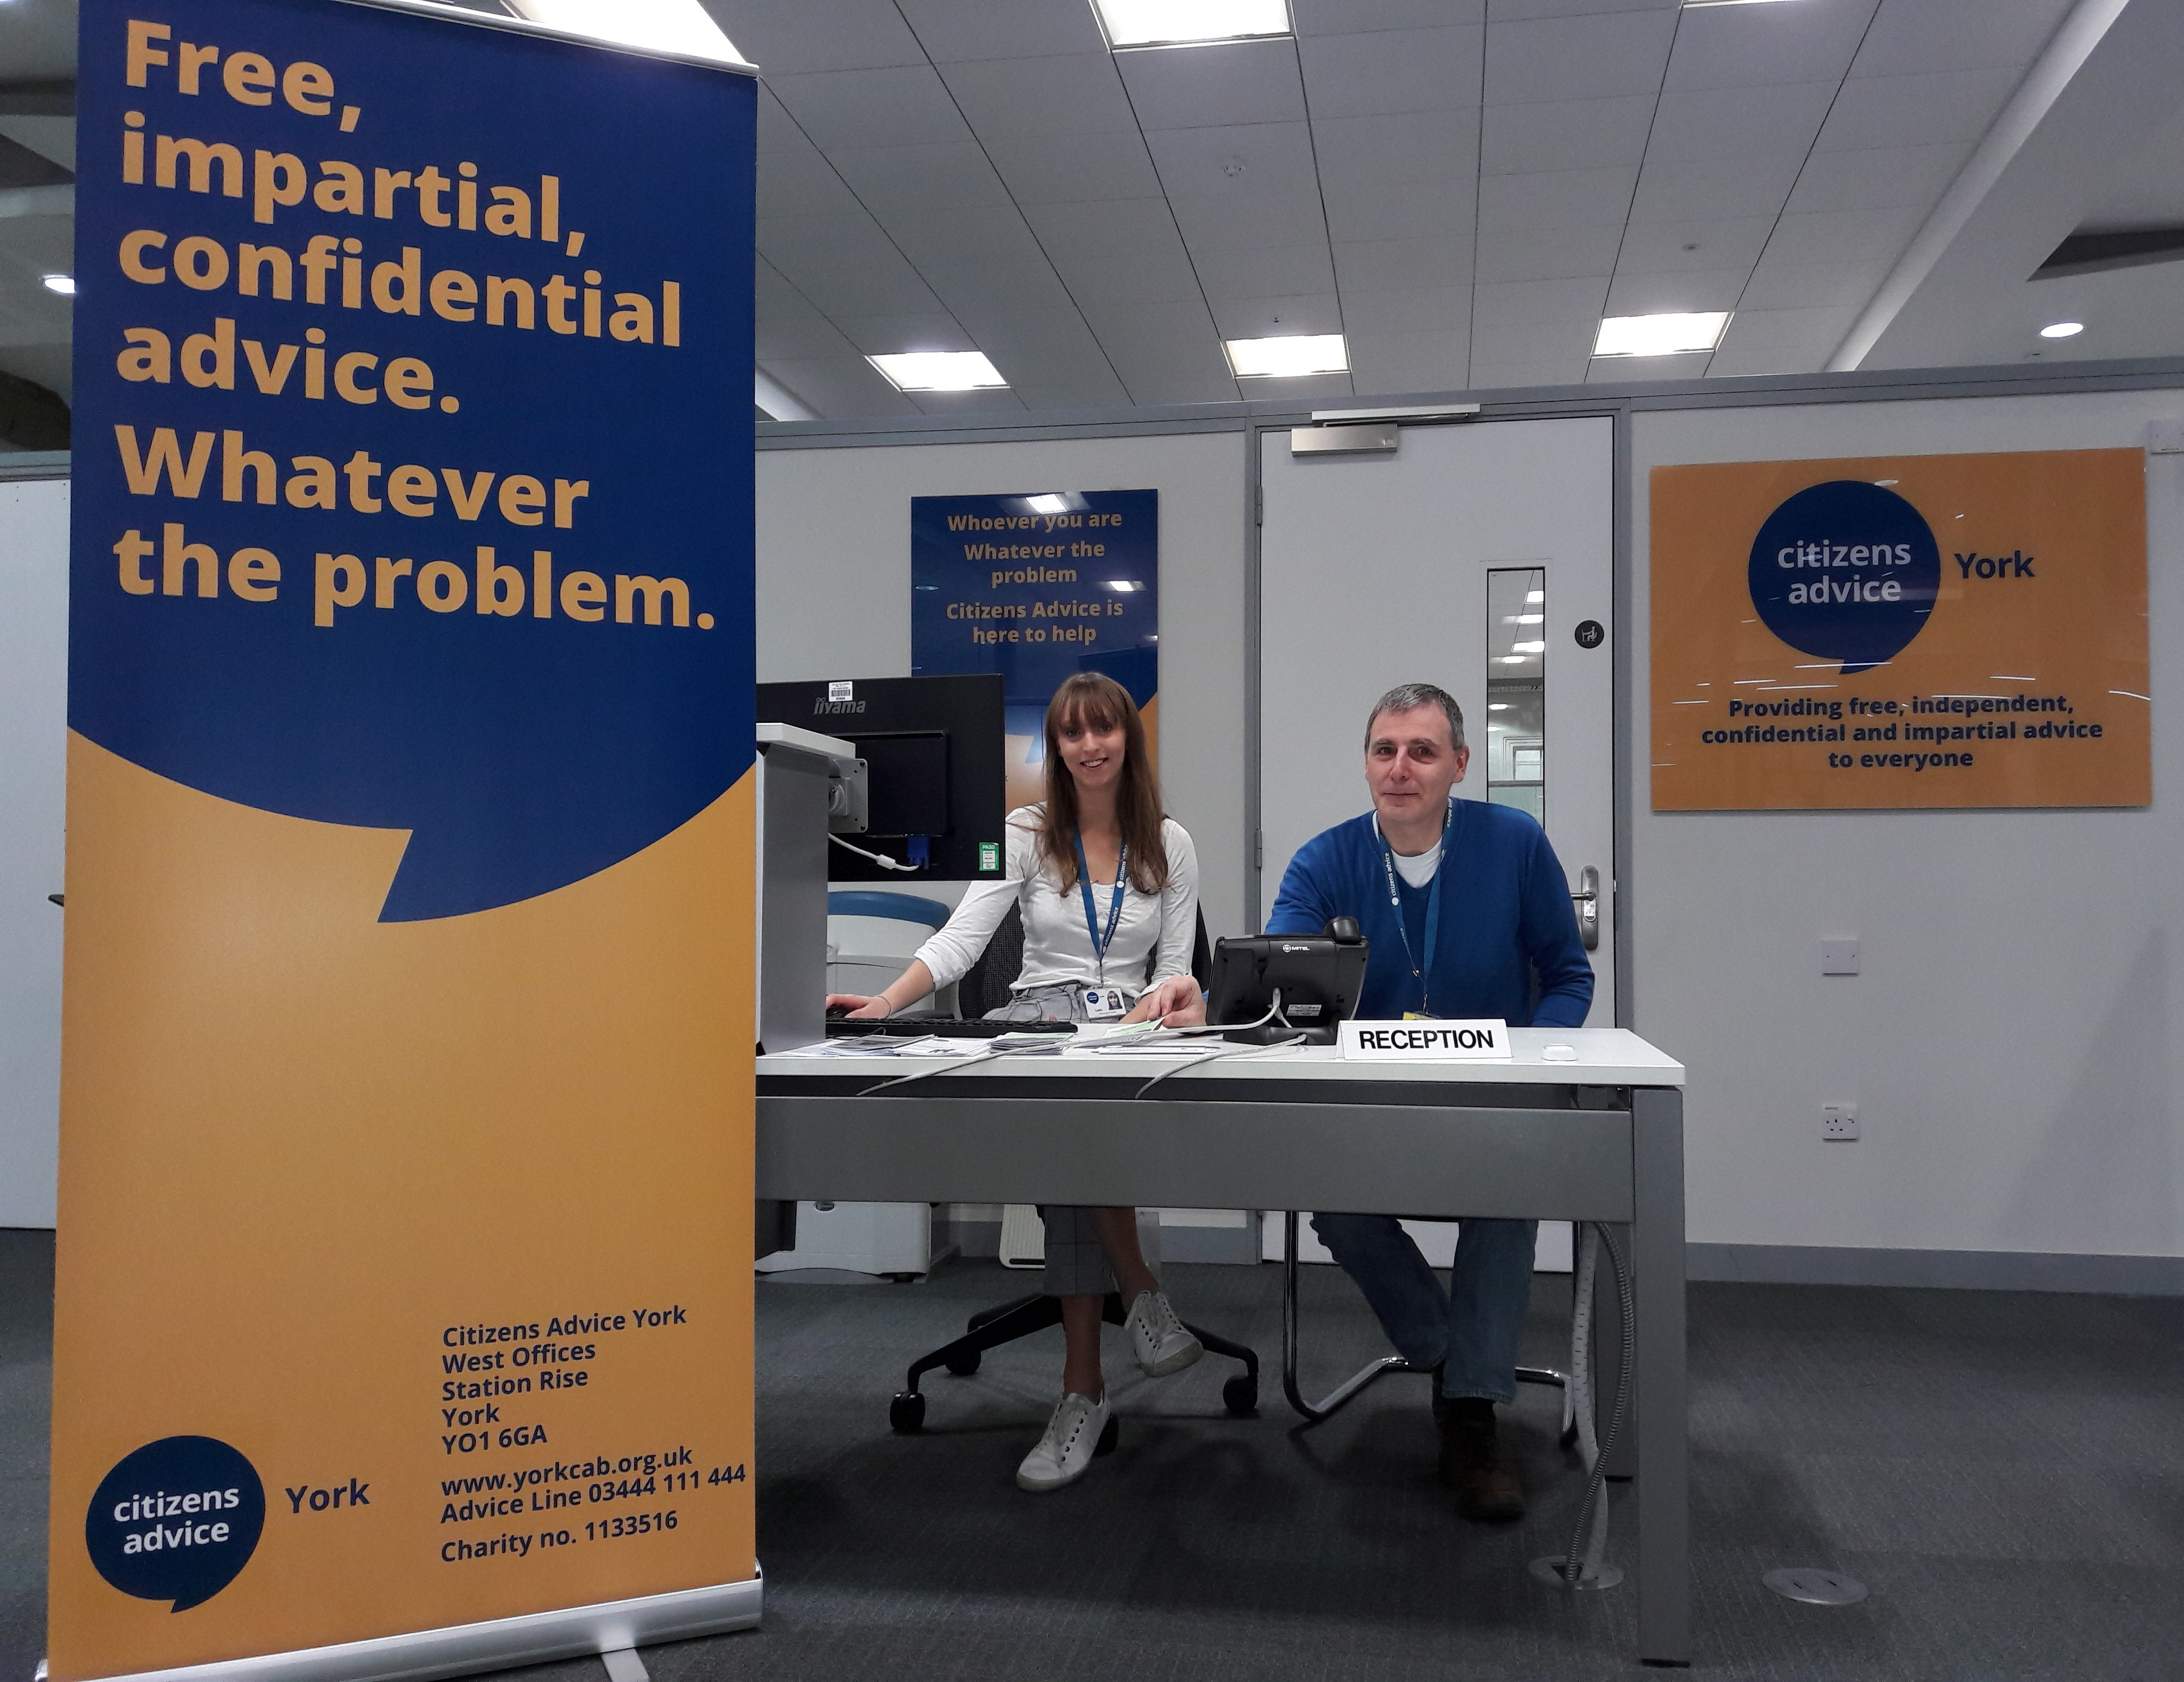 Citizens advice york u2013 whoever you are whatever the problem